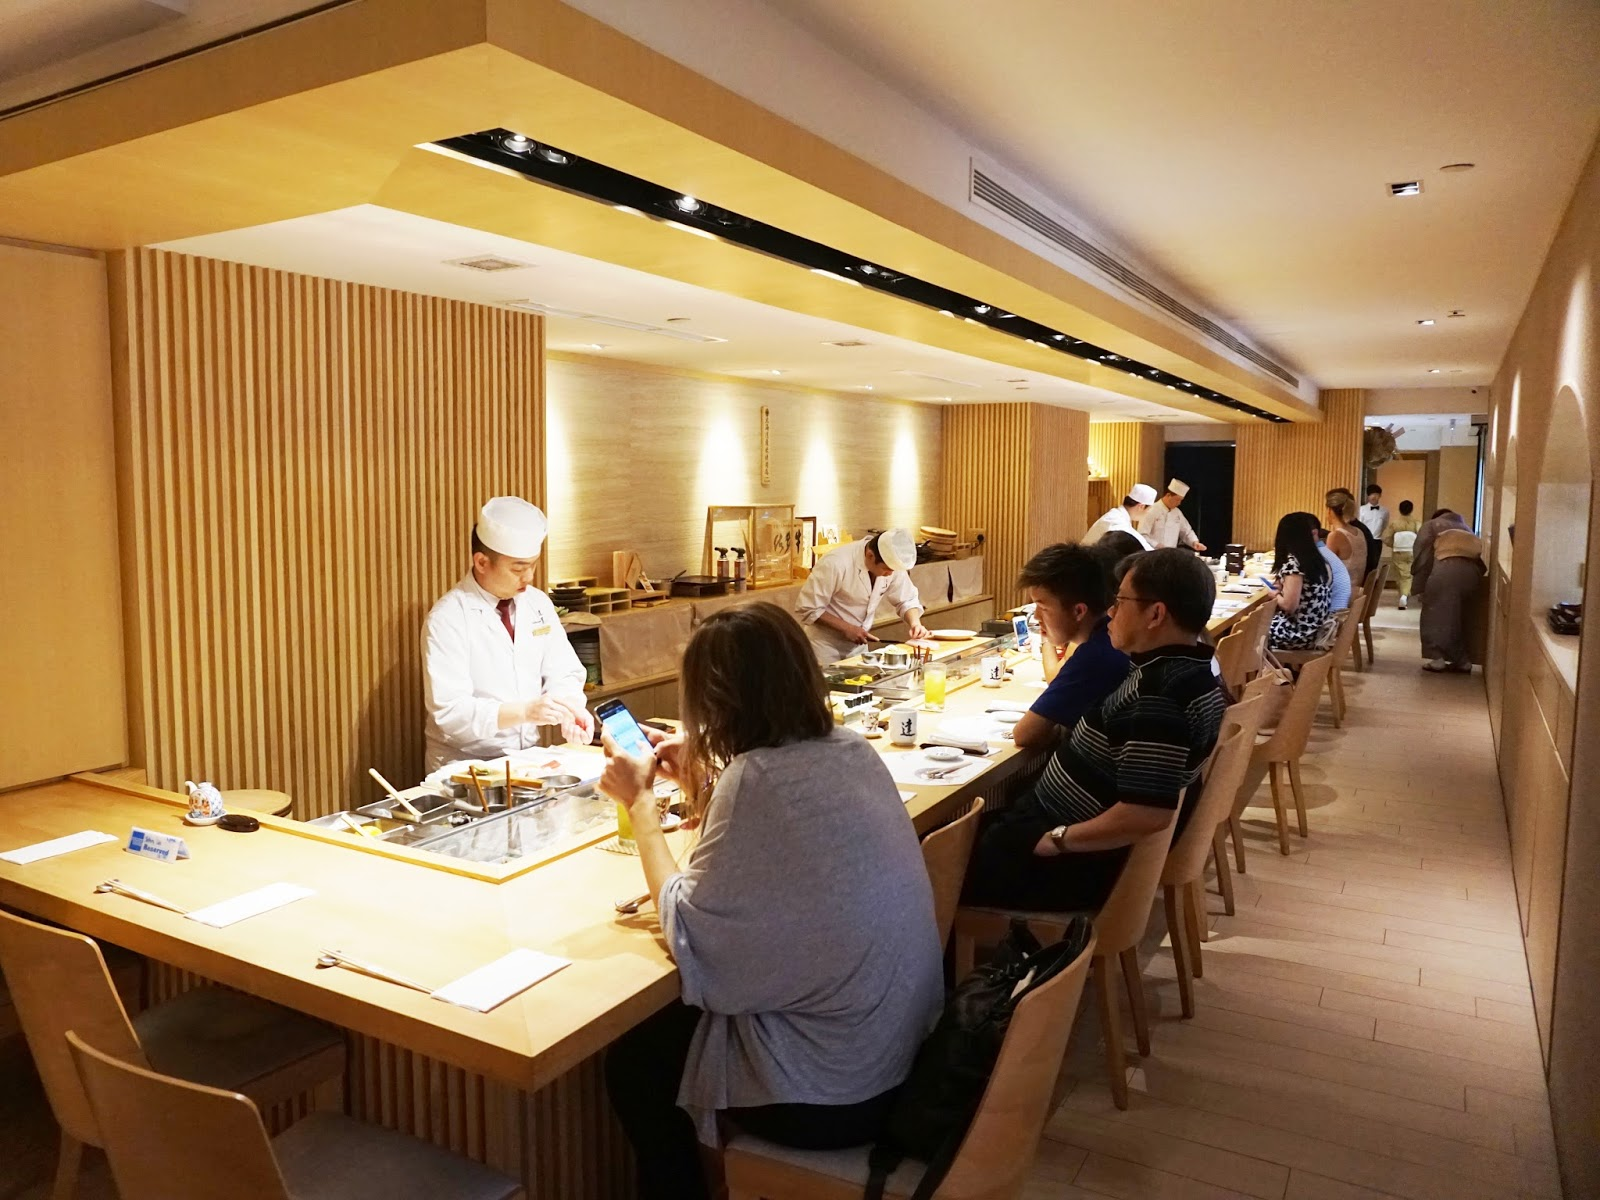 my favorite japanese restaurant Dear lovelies, today i will show our very special experience at yakuza first floor, one of my favorite japanese restaurants the restaurant is located in the heart of lisbon with a beautiful decor and a wonderful garden.